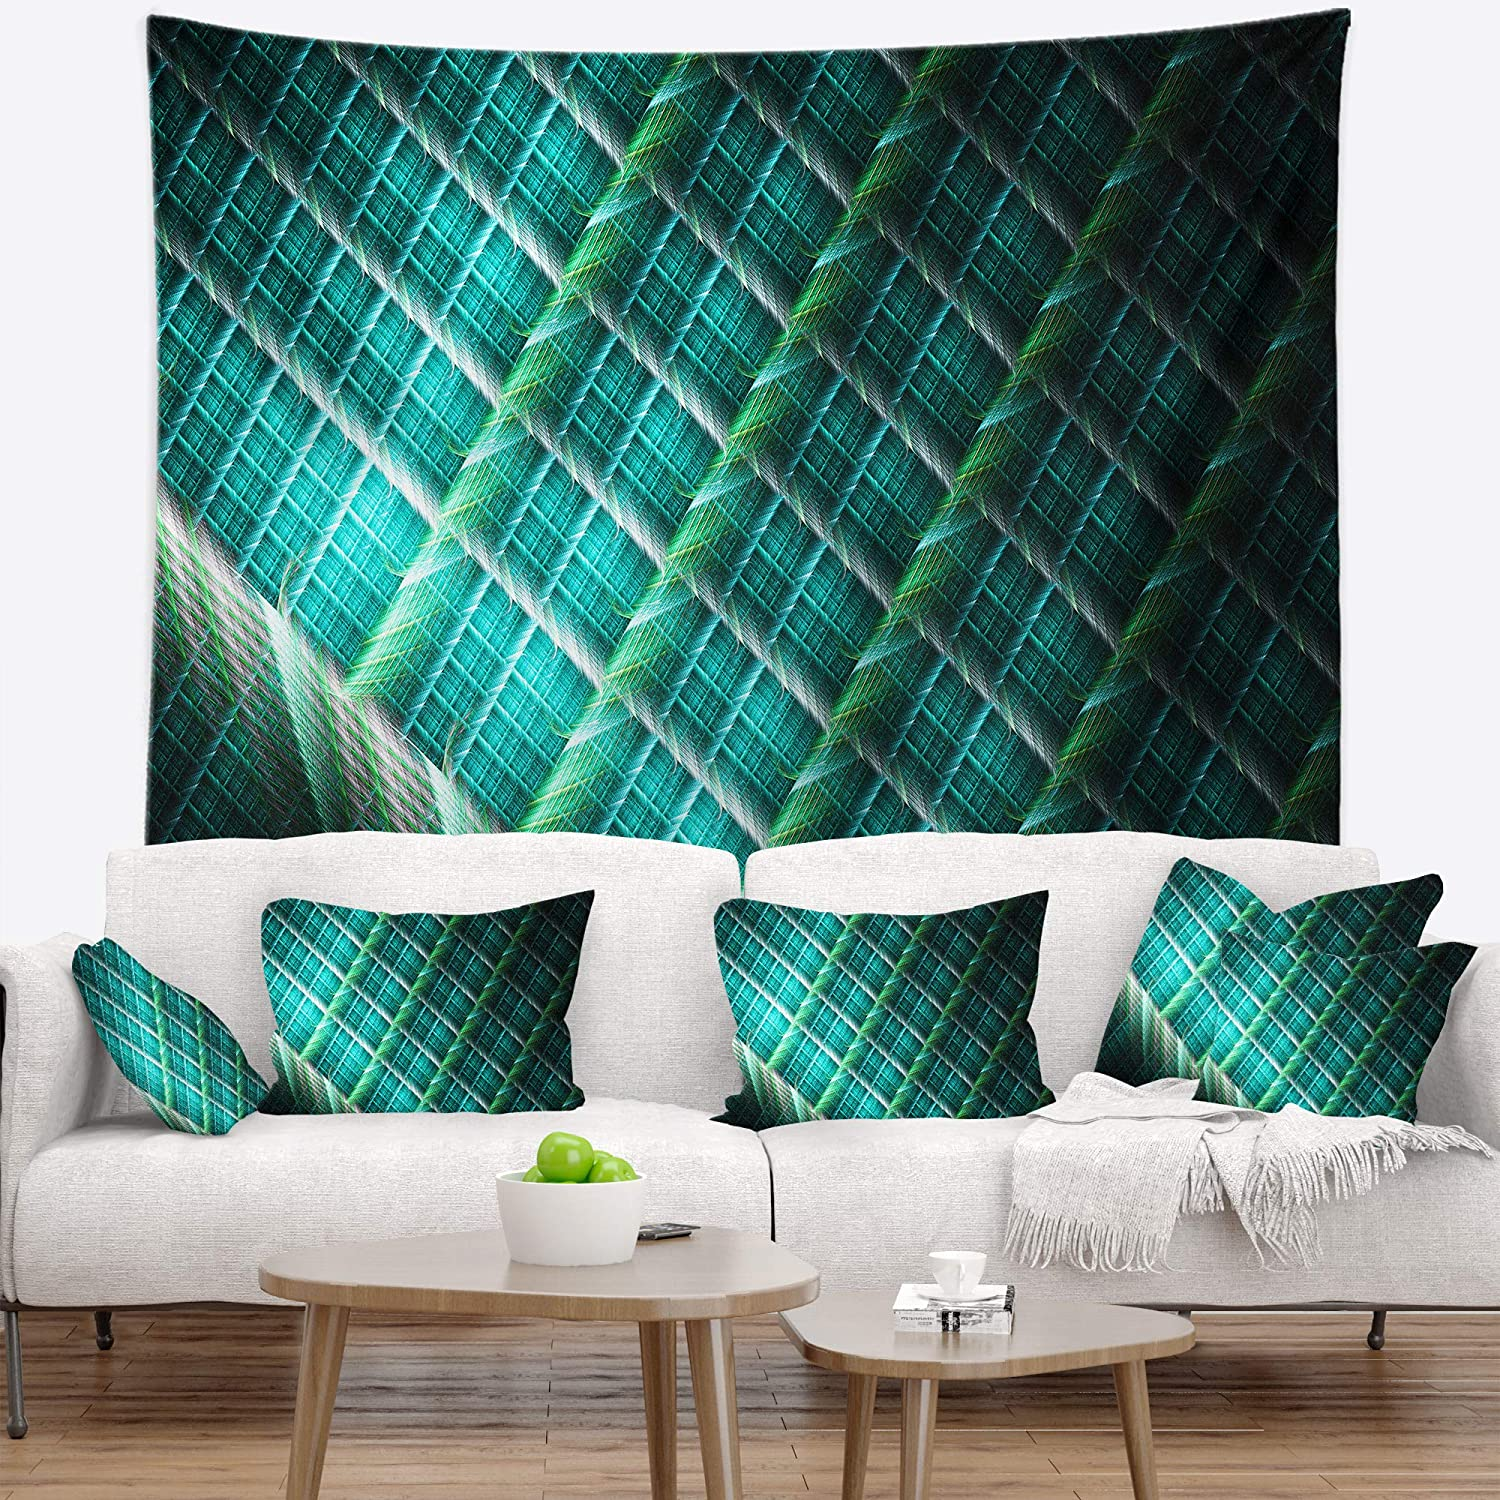 Large 60 x 50 Designart TAP15814-60-50 Green Fractal Grill Pattern Abstract Blanket D/écor Art for Home and Office Wall Tapestry Created on Lightweight Polyester Fabric